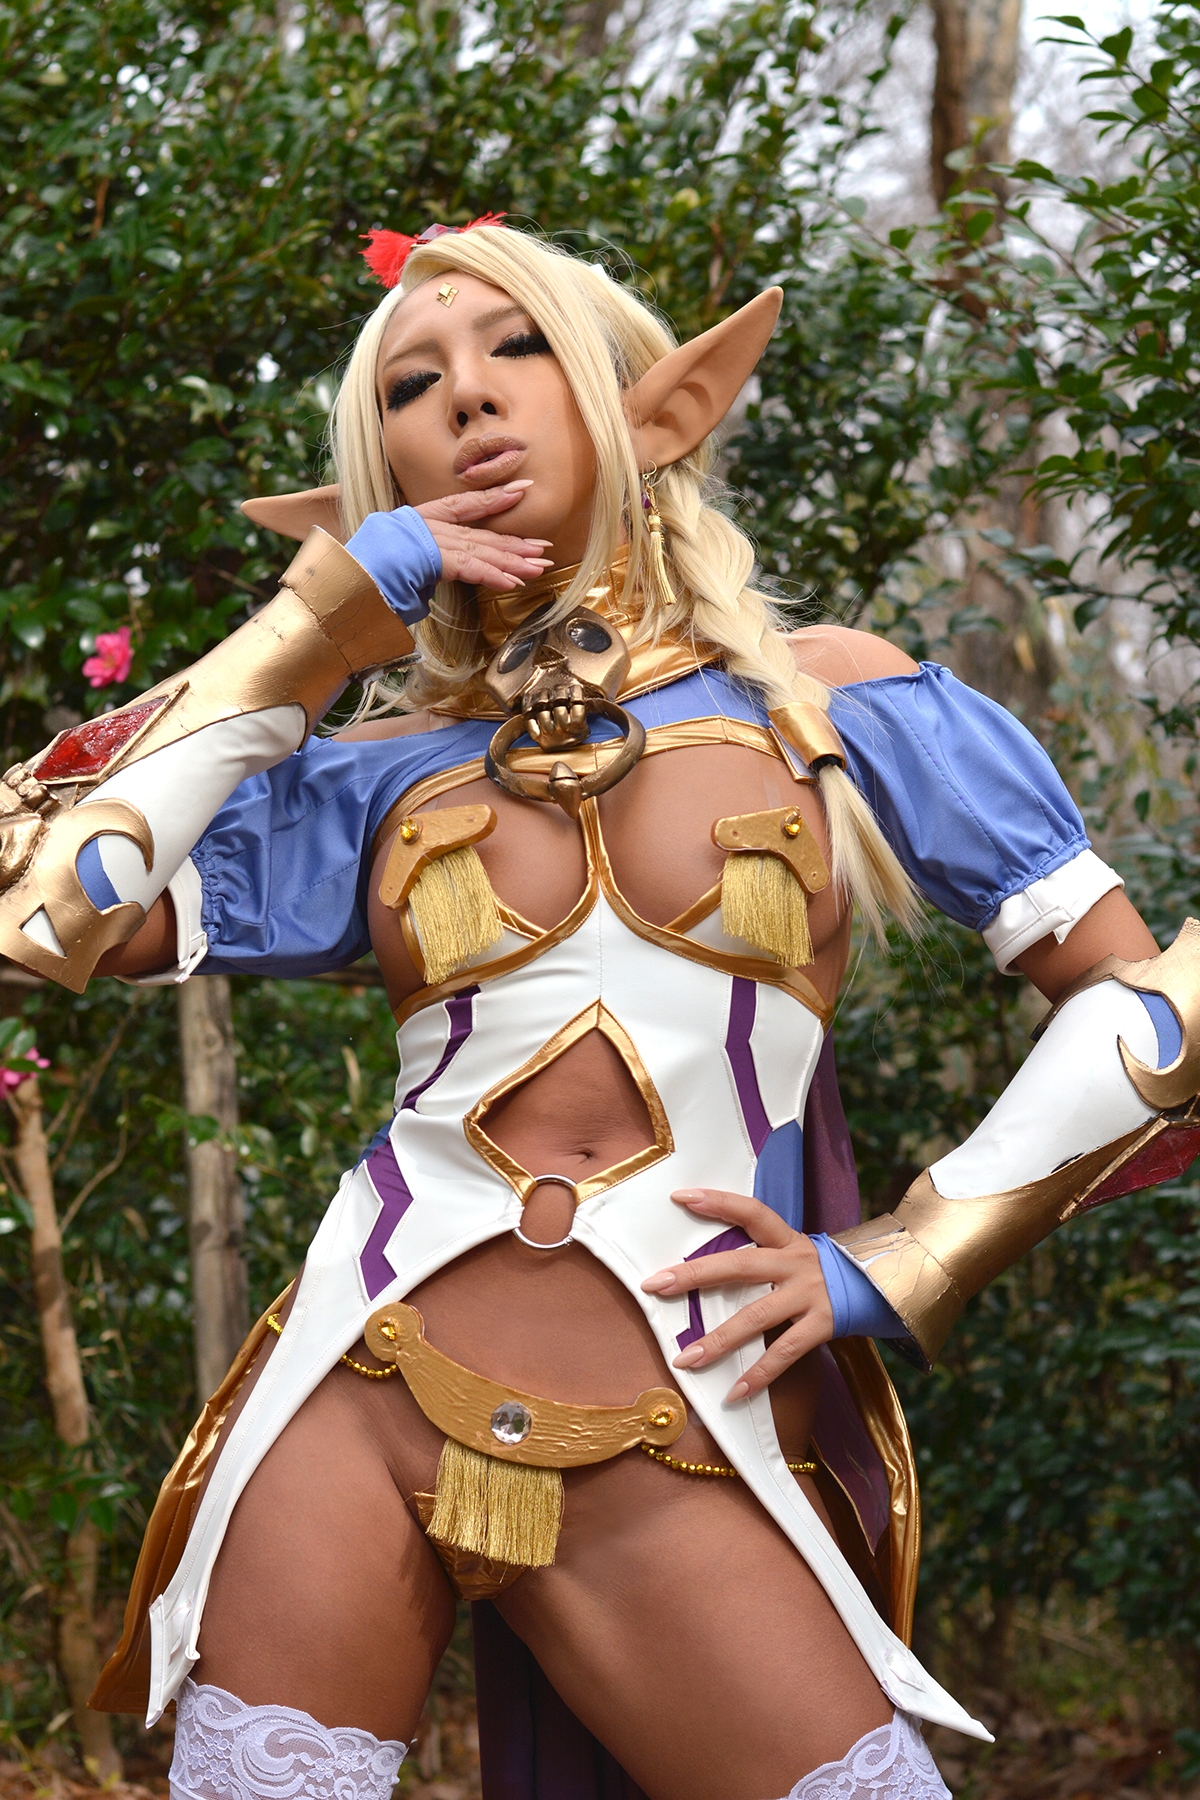 Cosplay dark elf porn naked toons